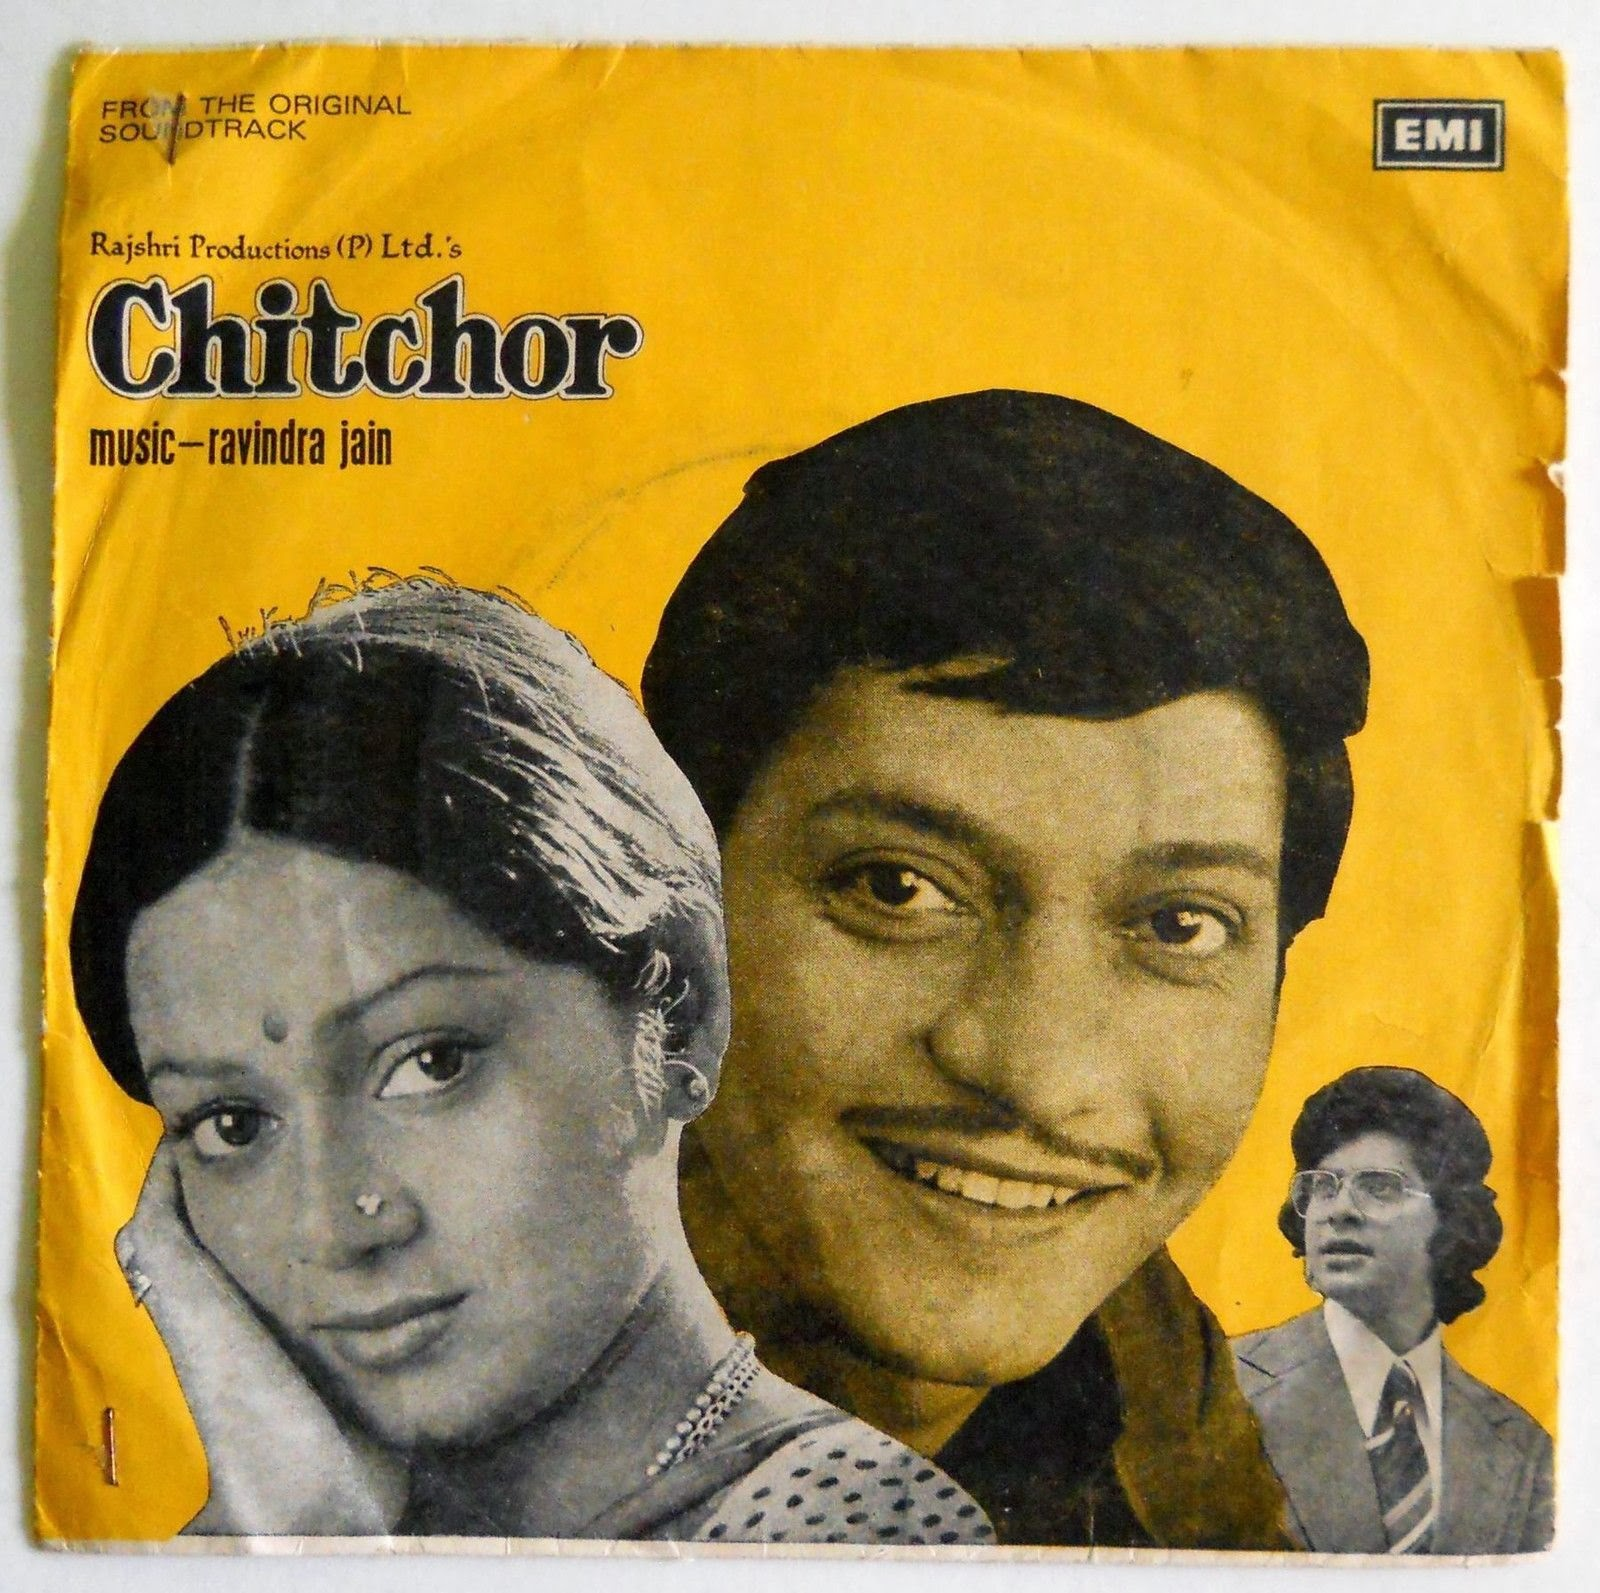 Bollywood Hindi Movie Record Covers Part 1 Old Indian